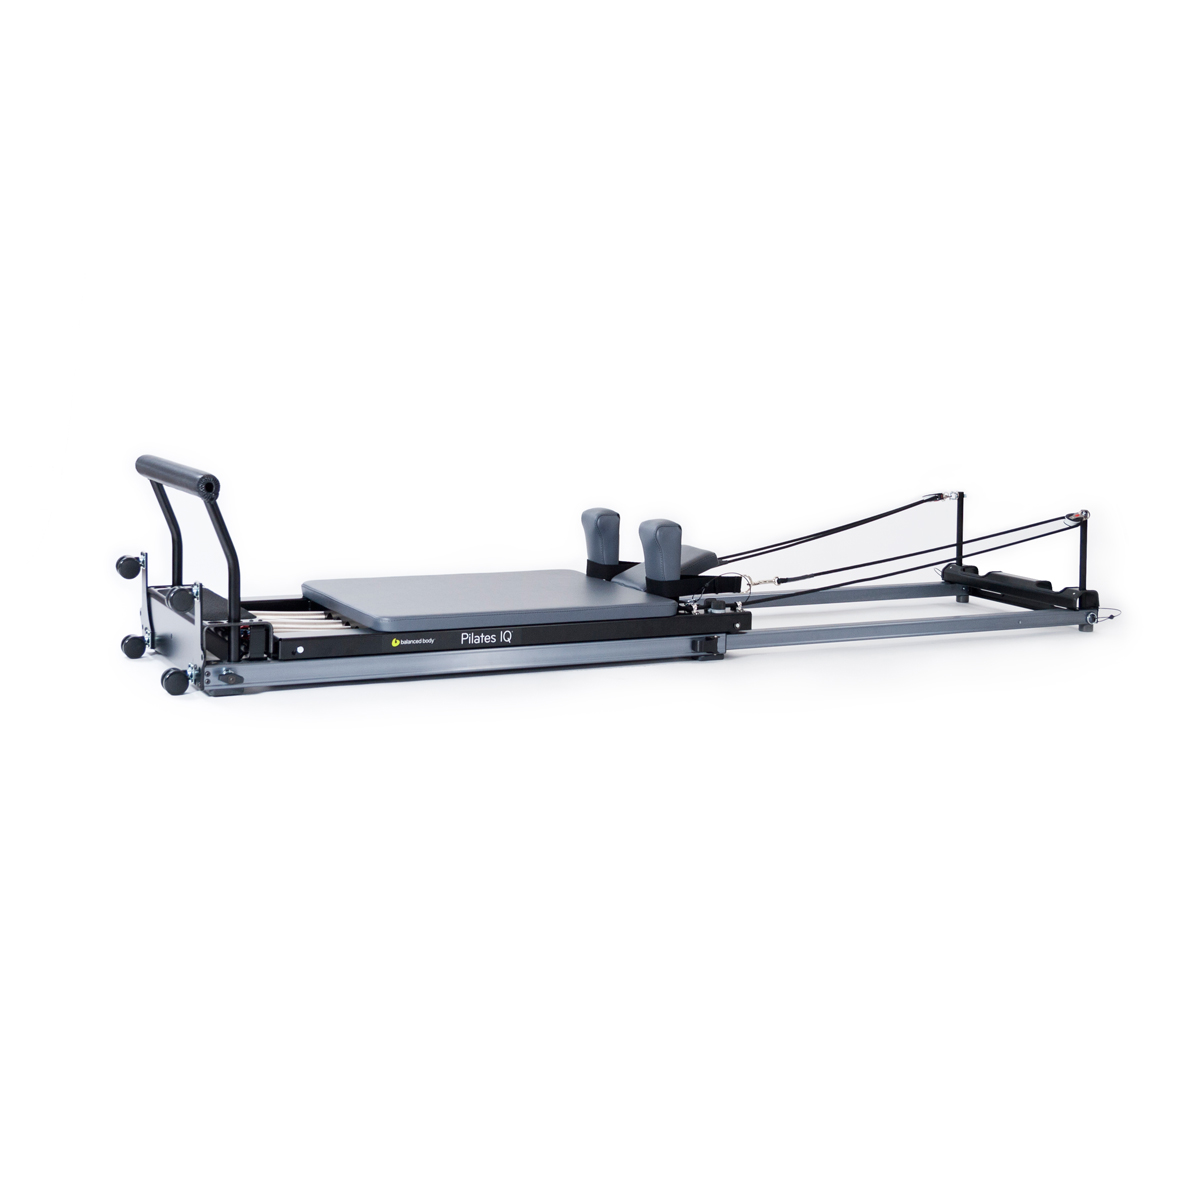 Pilates IQ Reformer Balanced Body